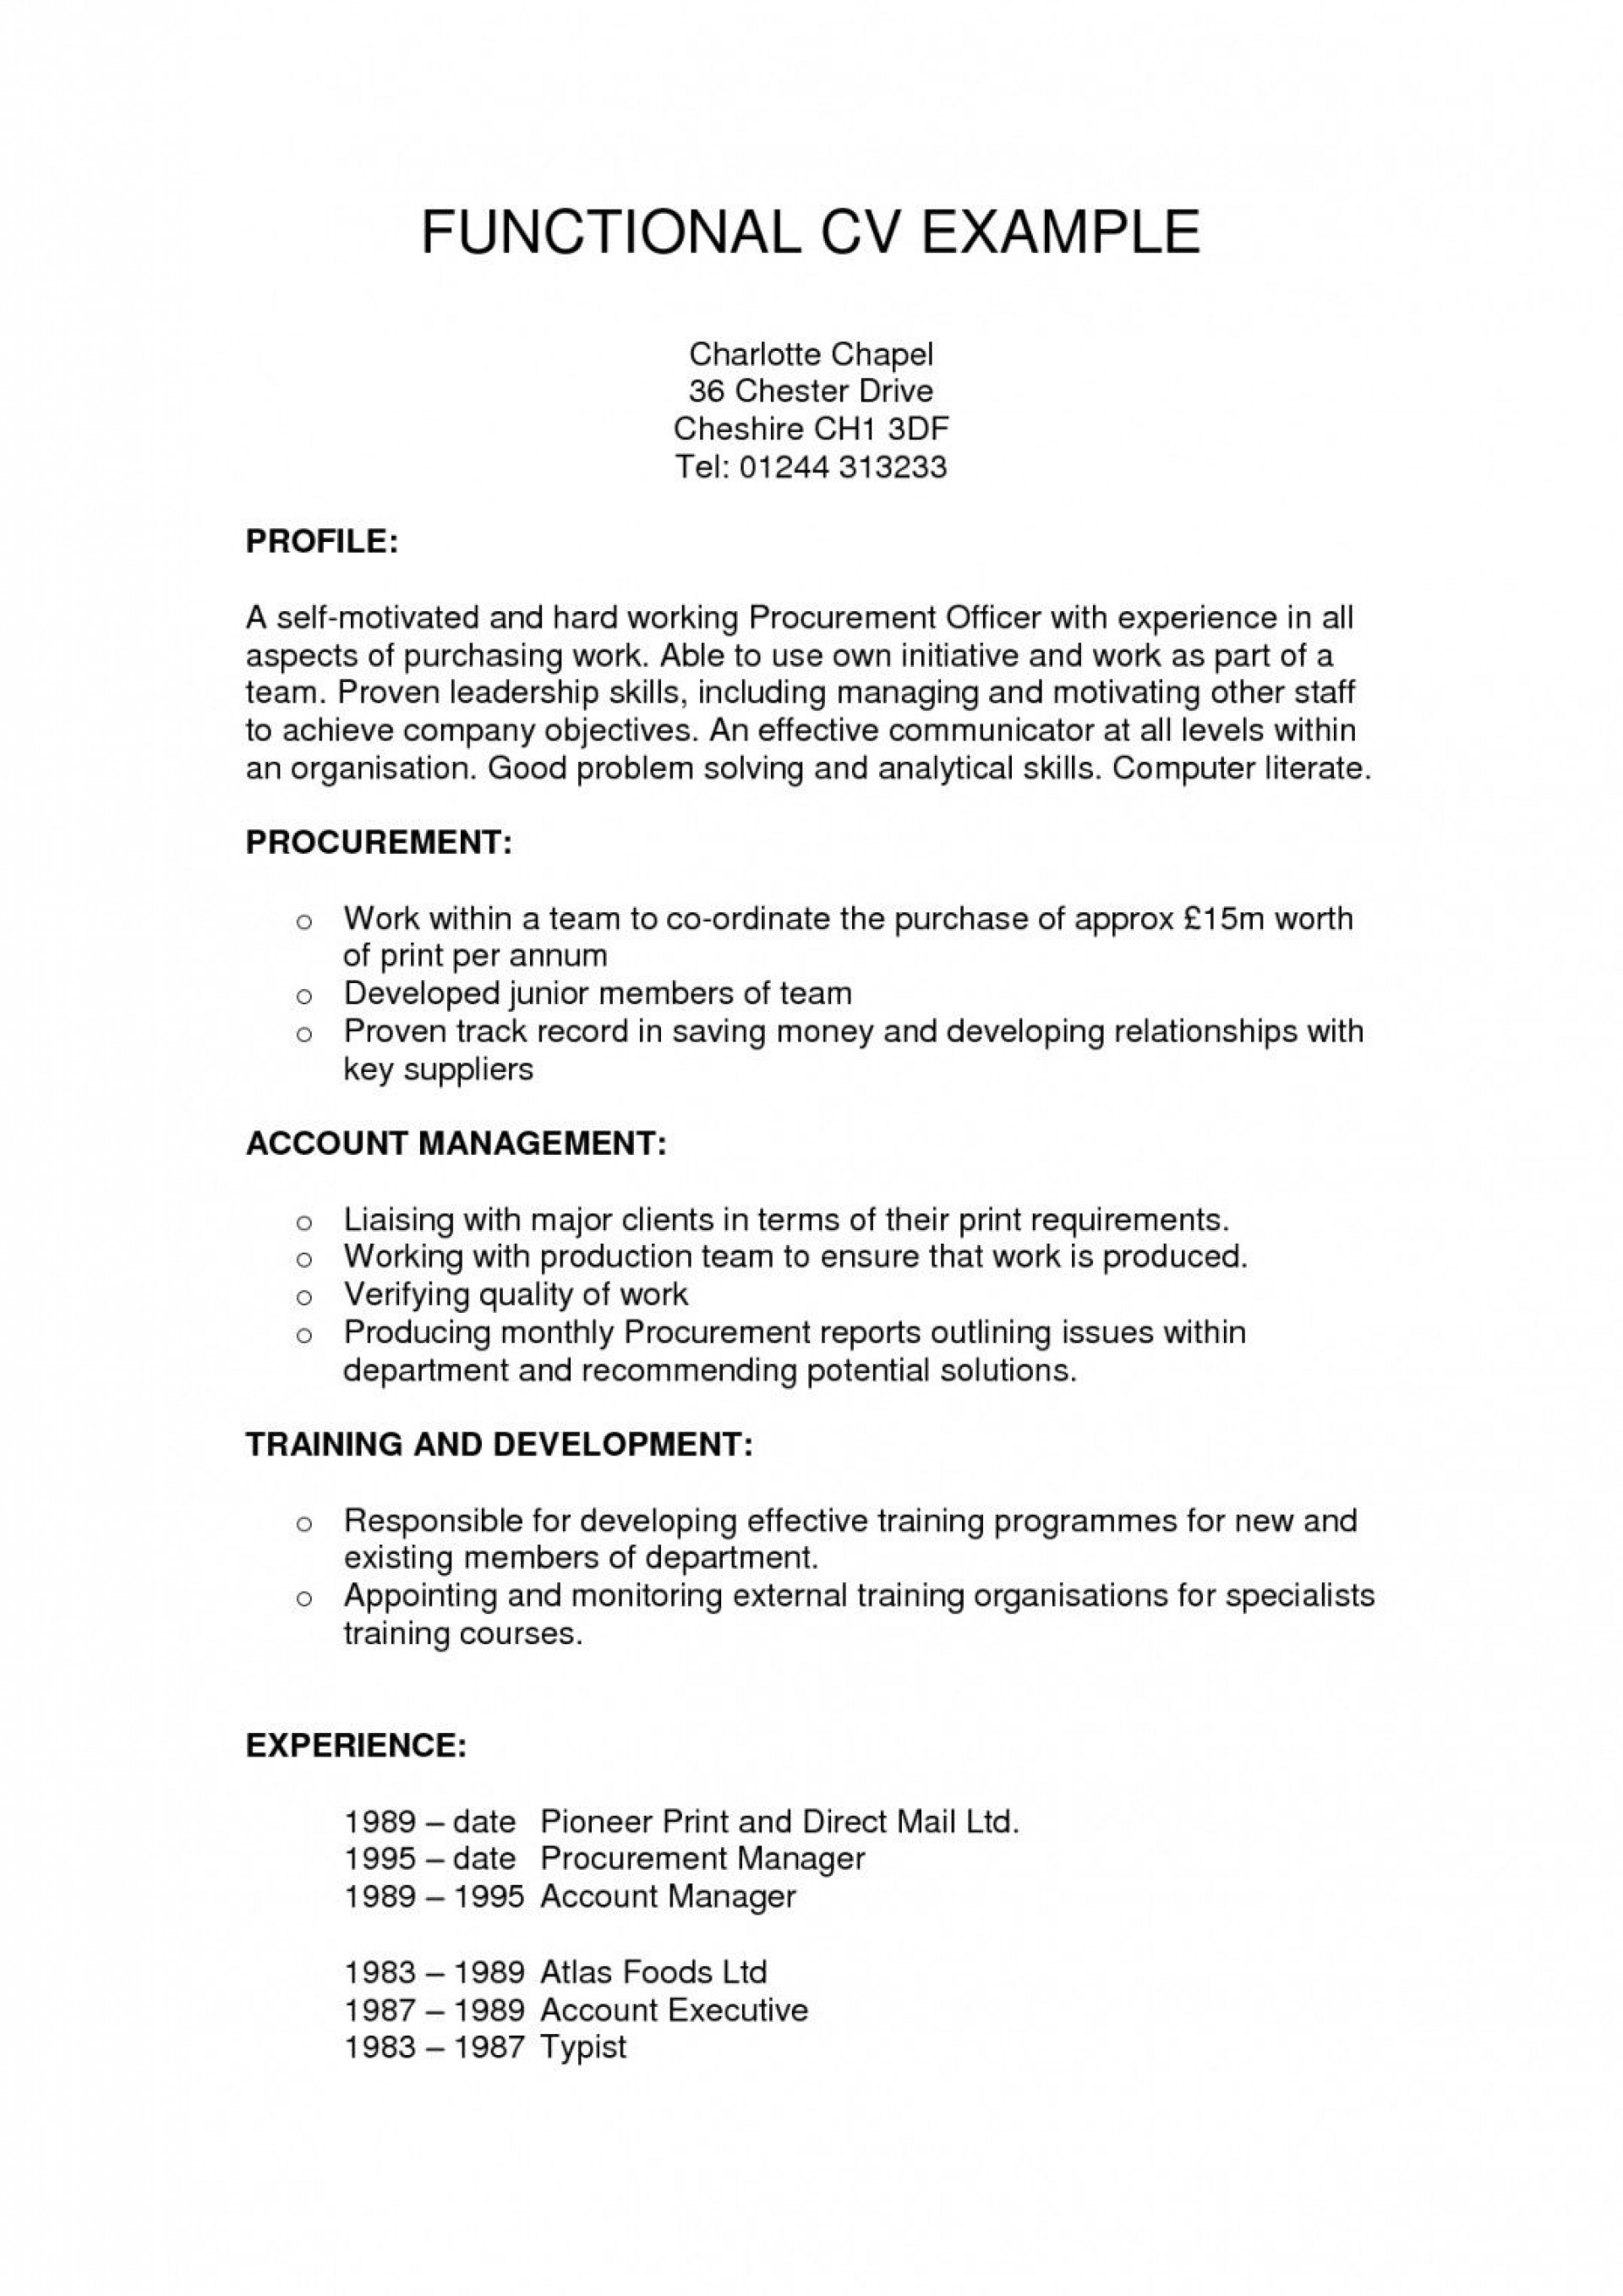 005 Incredible Functional Resume Template Free High Definition 1920